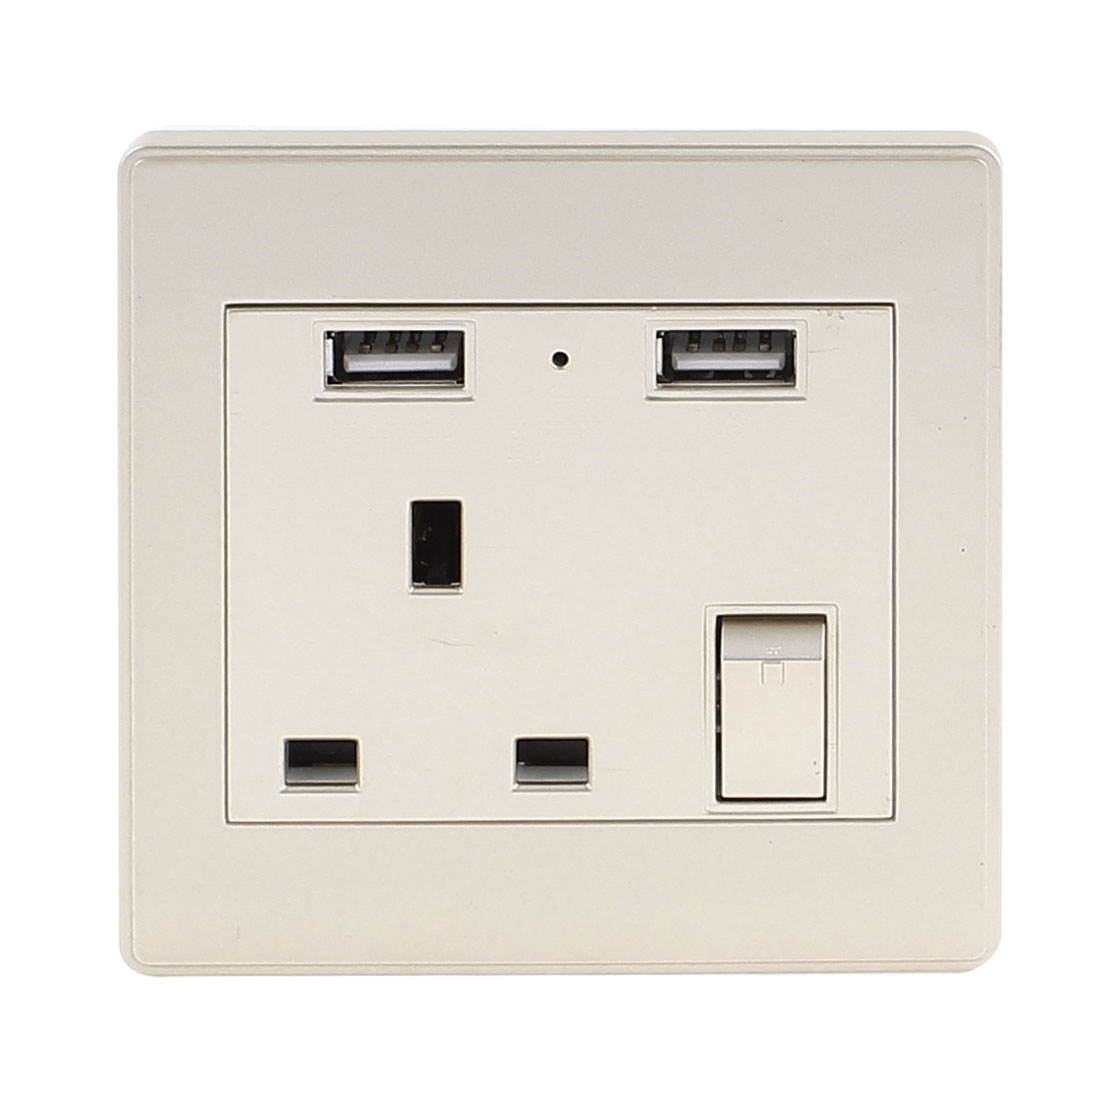 AC 110V-250V UK Socket 2 USB Port 5VDC 2100mA Charging LED Lamp Switch Wall Outlet